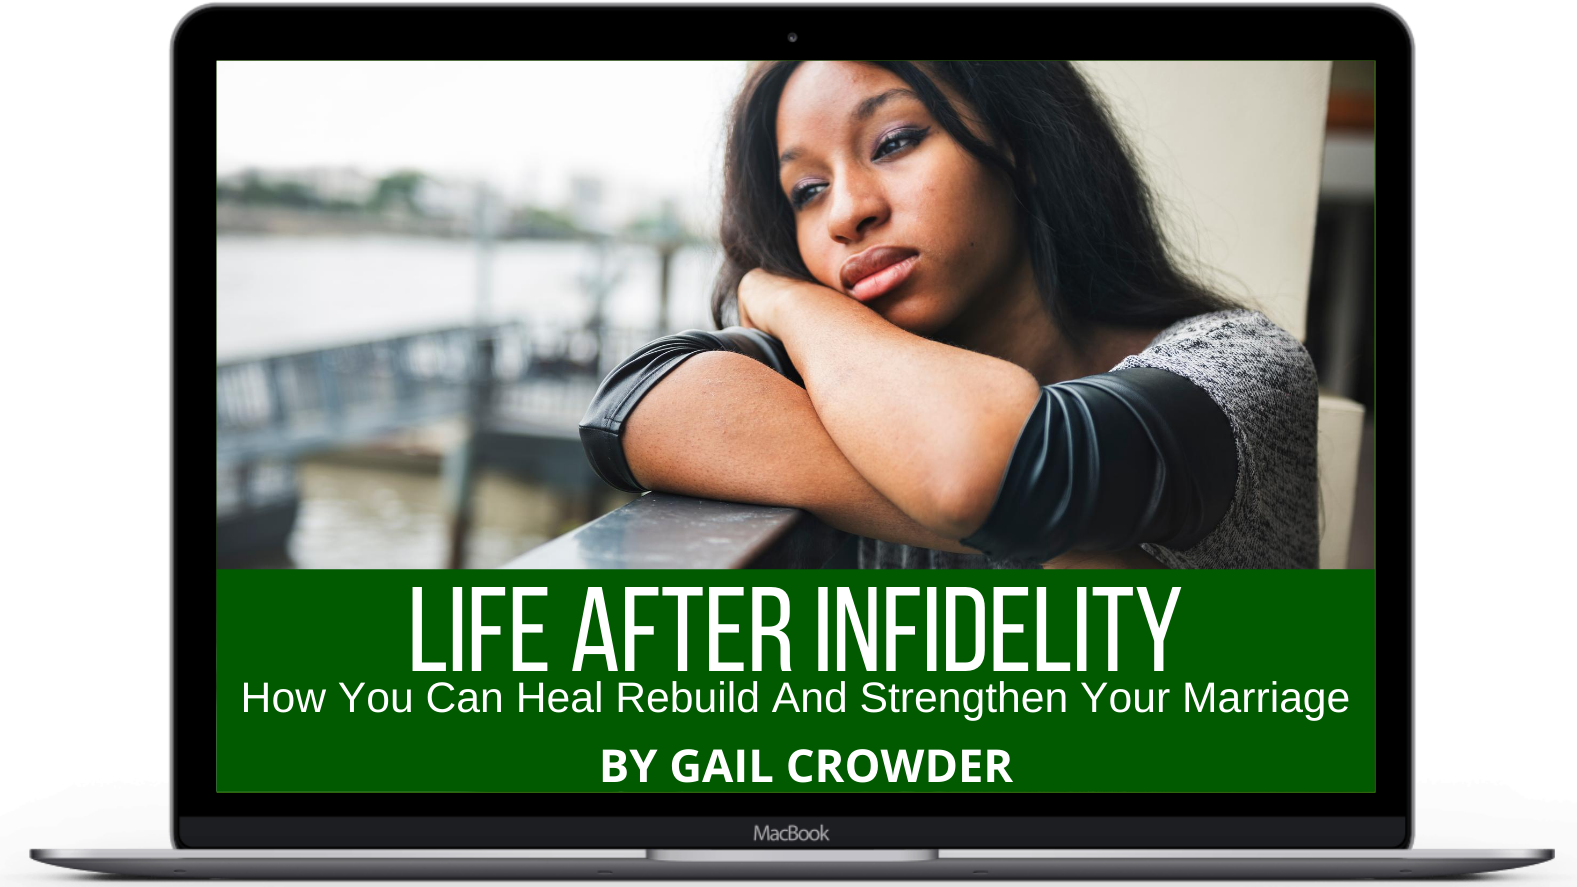 Life After Infidelity Ebook